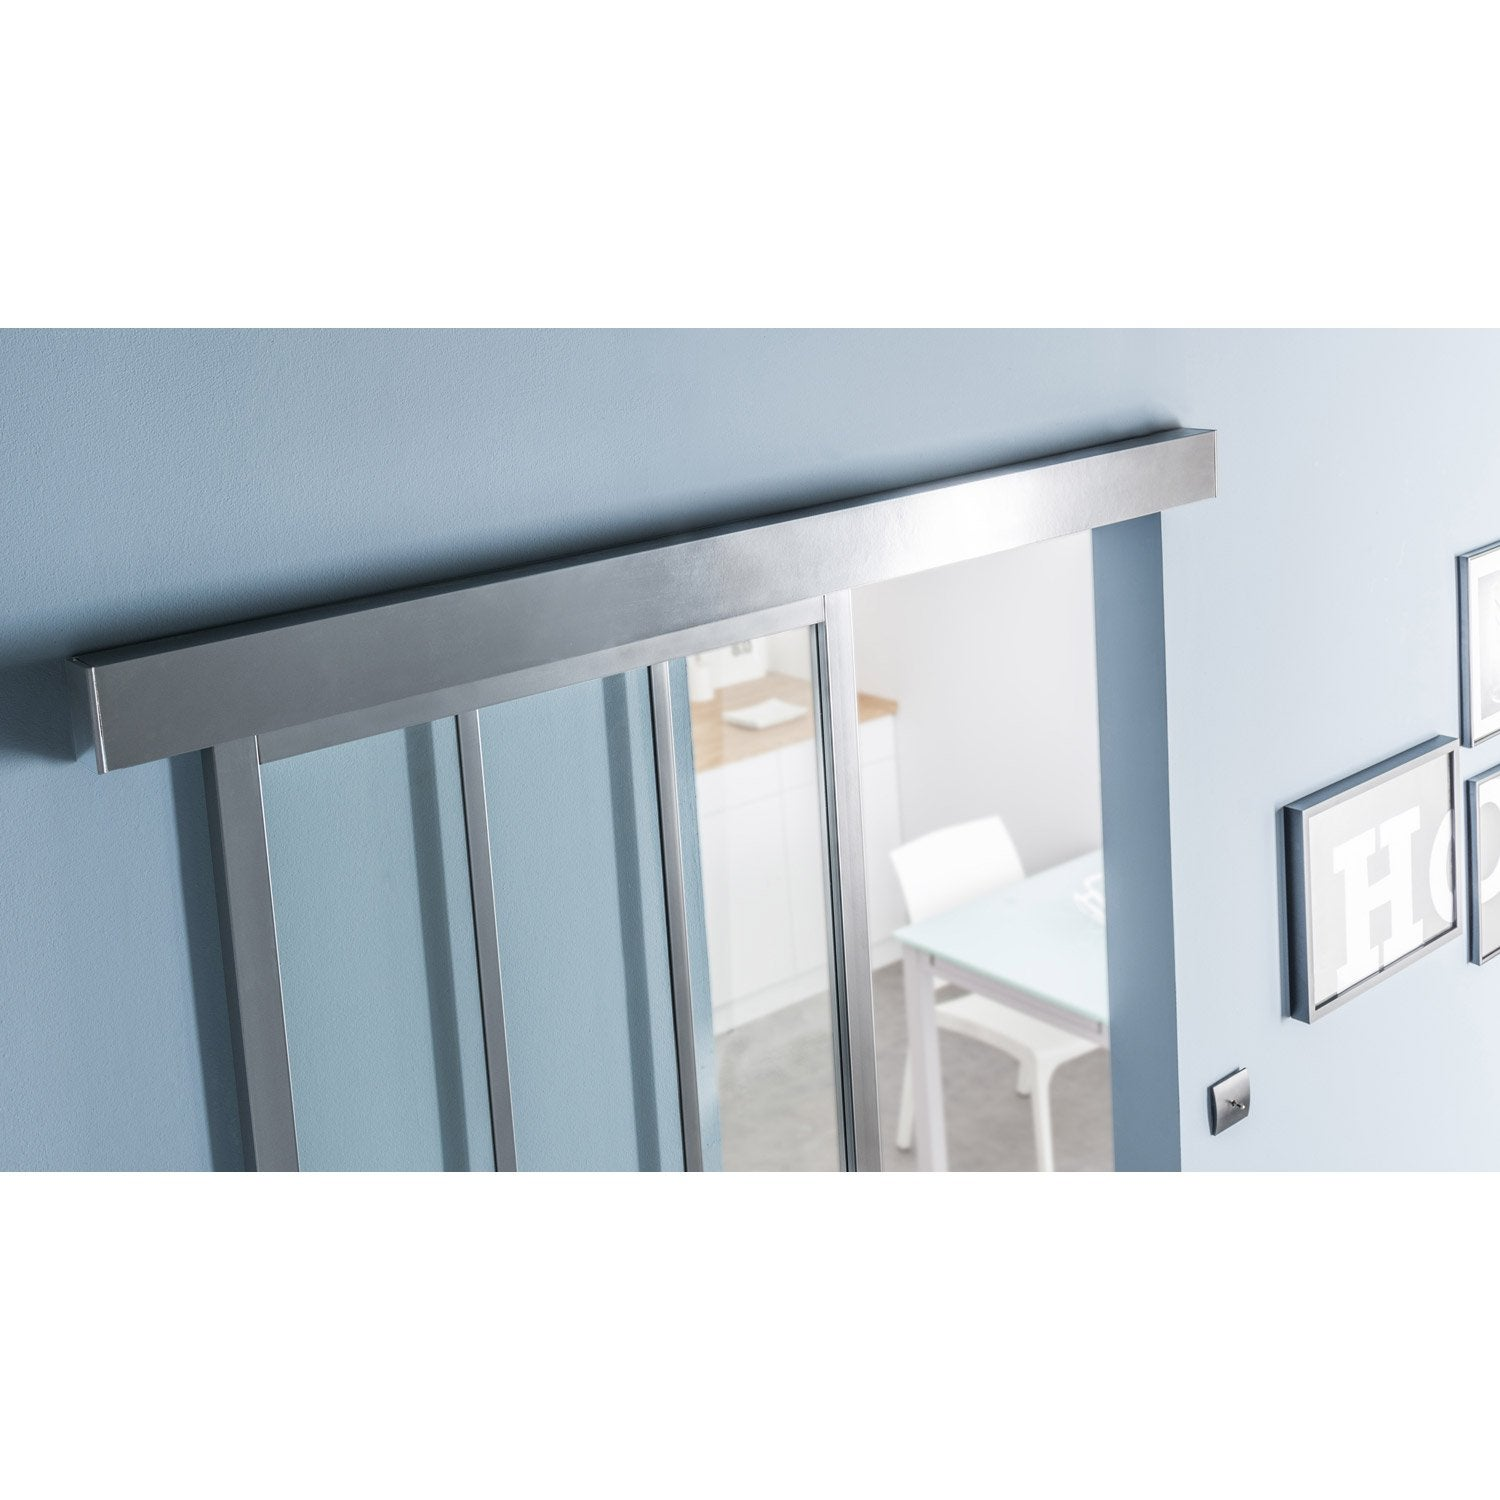 Rail coulissant habillage swing 2 cache gris fonc - Habillage porte interieur leroy merlin ...